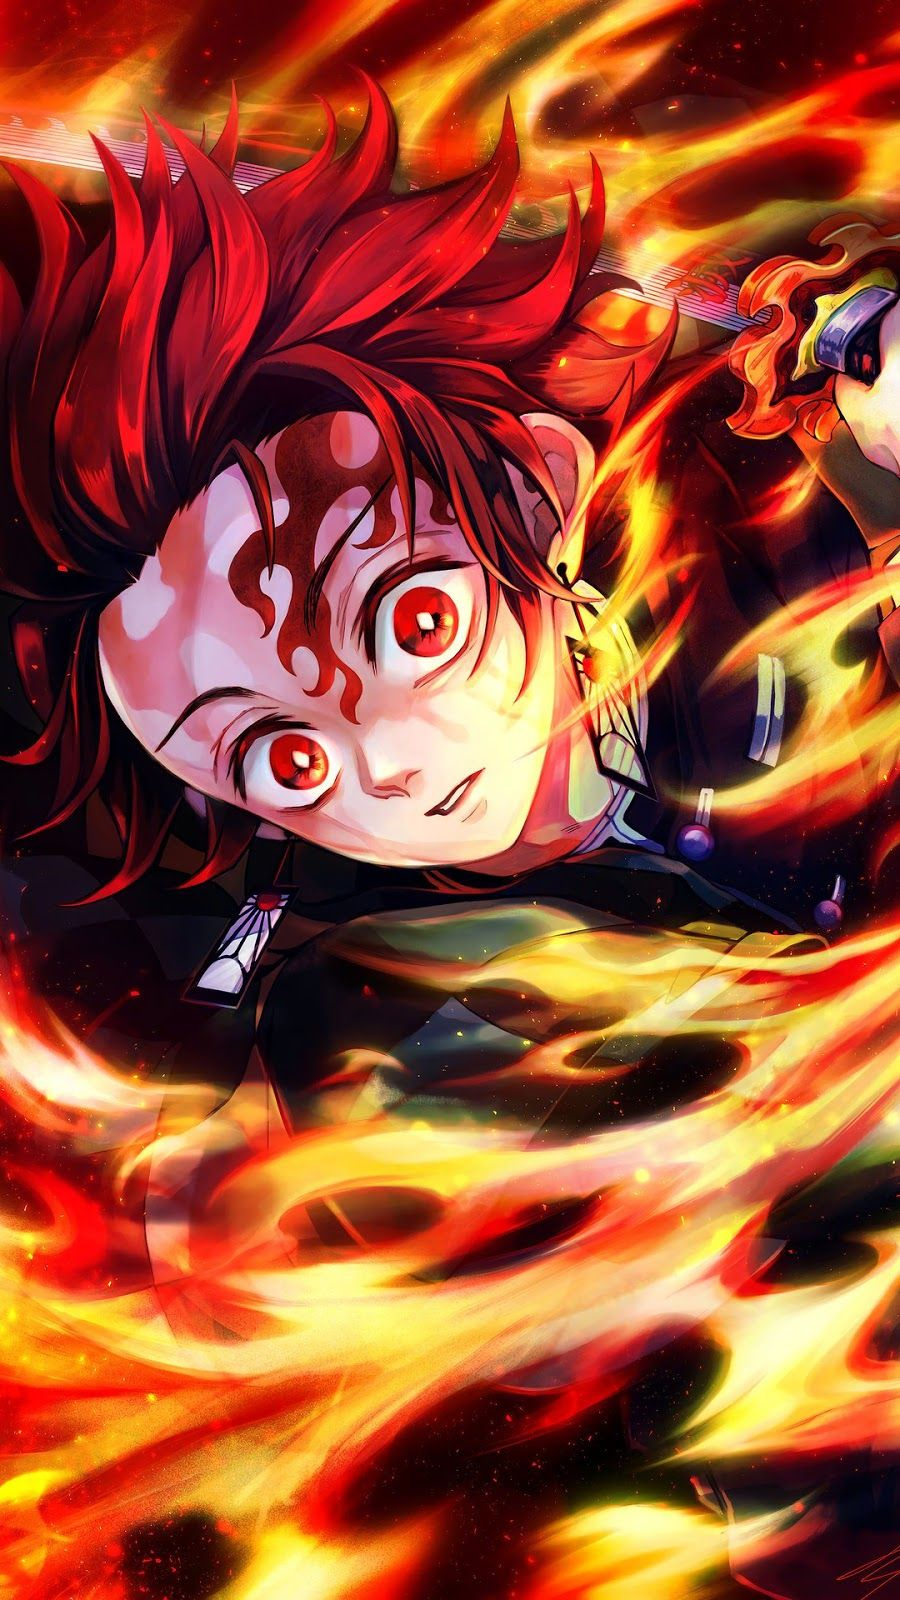 Photo of 40 Most Beautiful Demon Slayer Wallpapers for Mobile